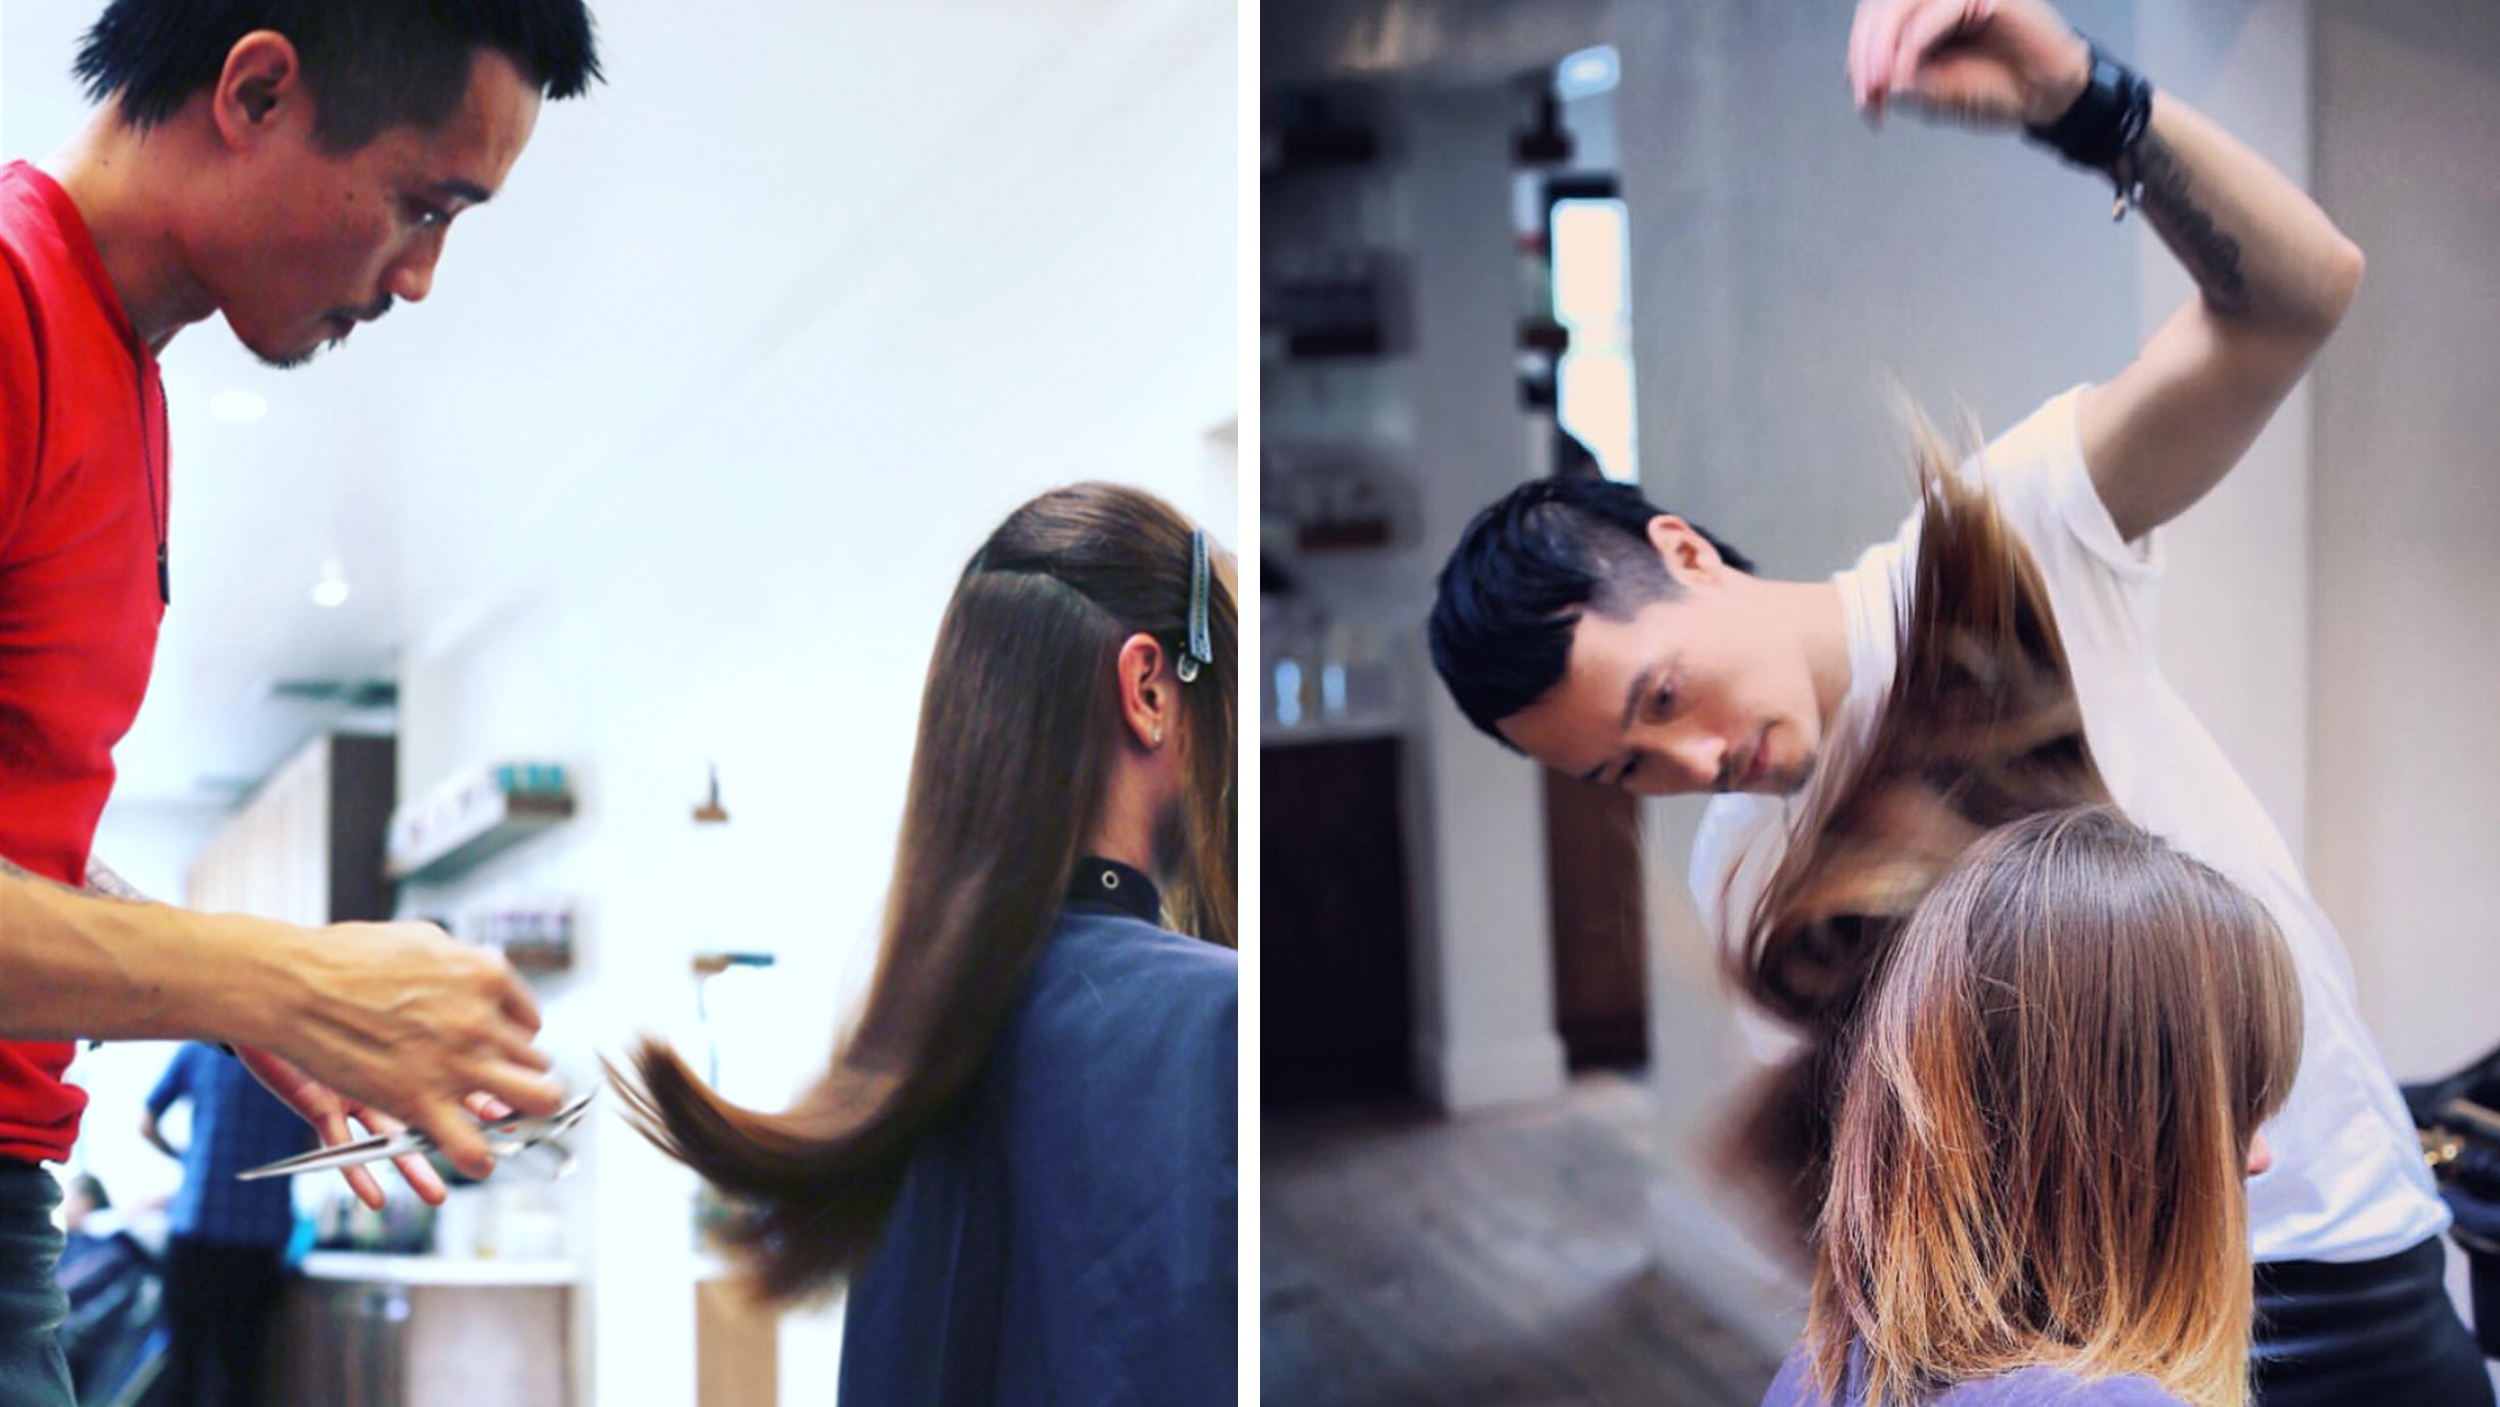 Dry Cut Hair Trend Heres Why Stylists Love It And You Will Too - Good places to get hair cut